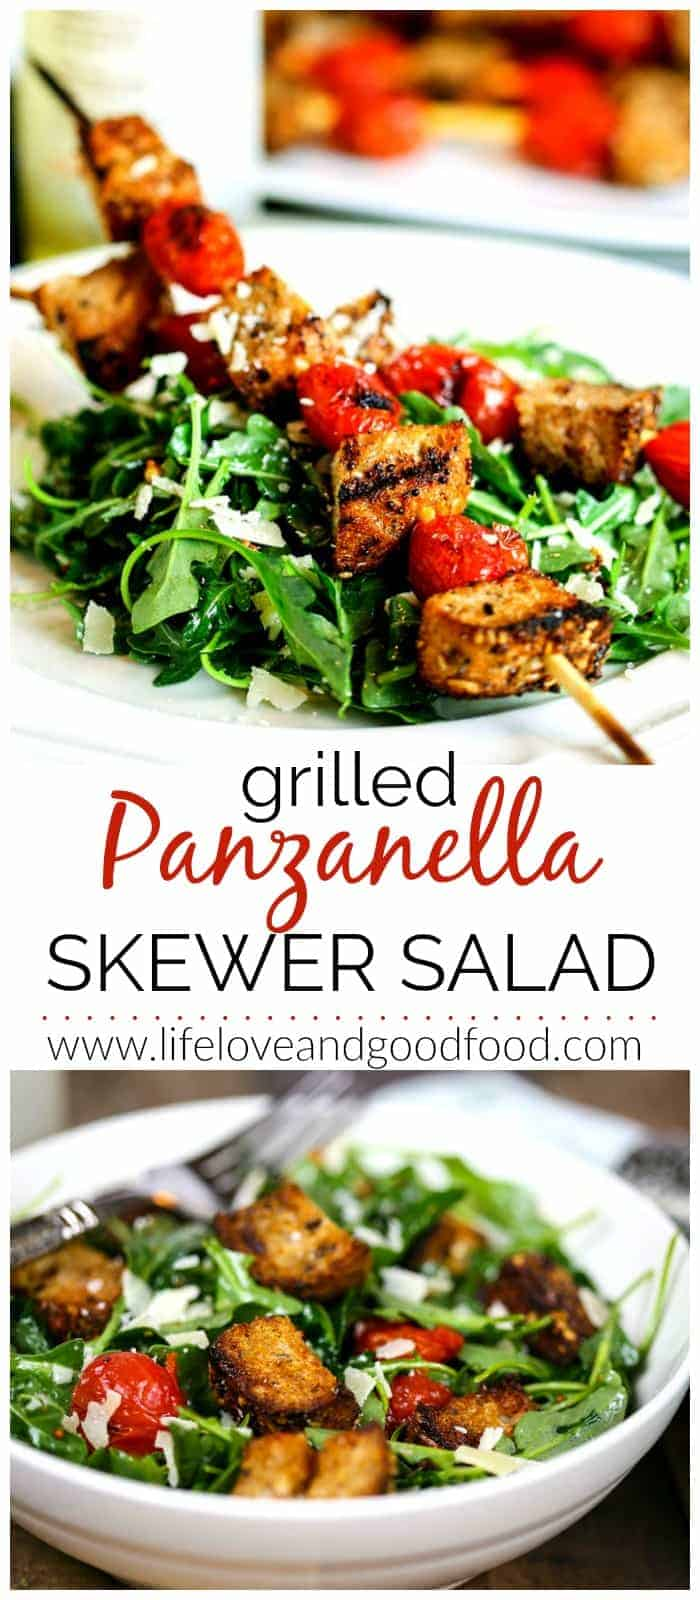 In this Grilled Panzanella Skewer Salad, nutty arugula is topped with a skewer of grilled tomatoes and multigrain croutons and dressed with a de-lite-ful mustard vinaigrette.